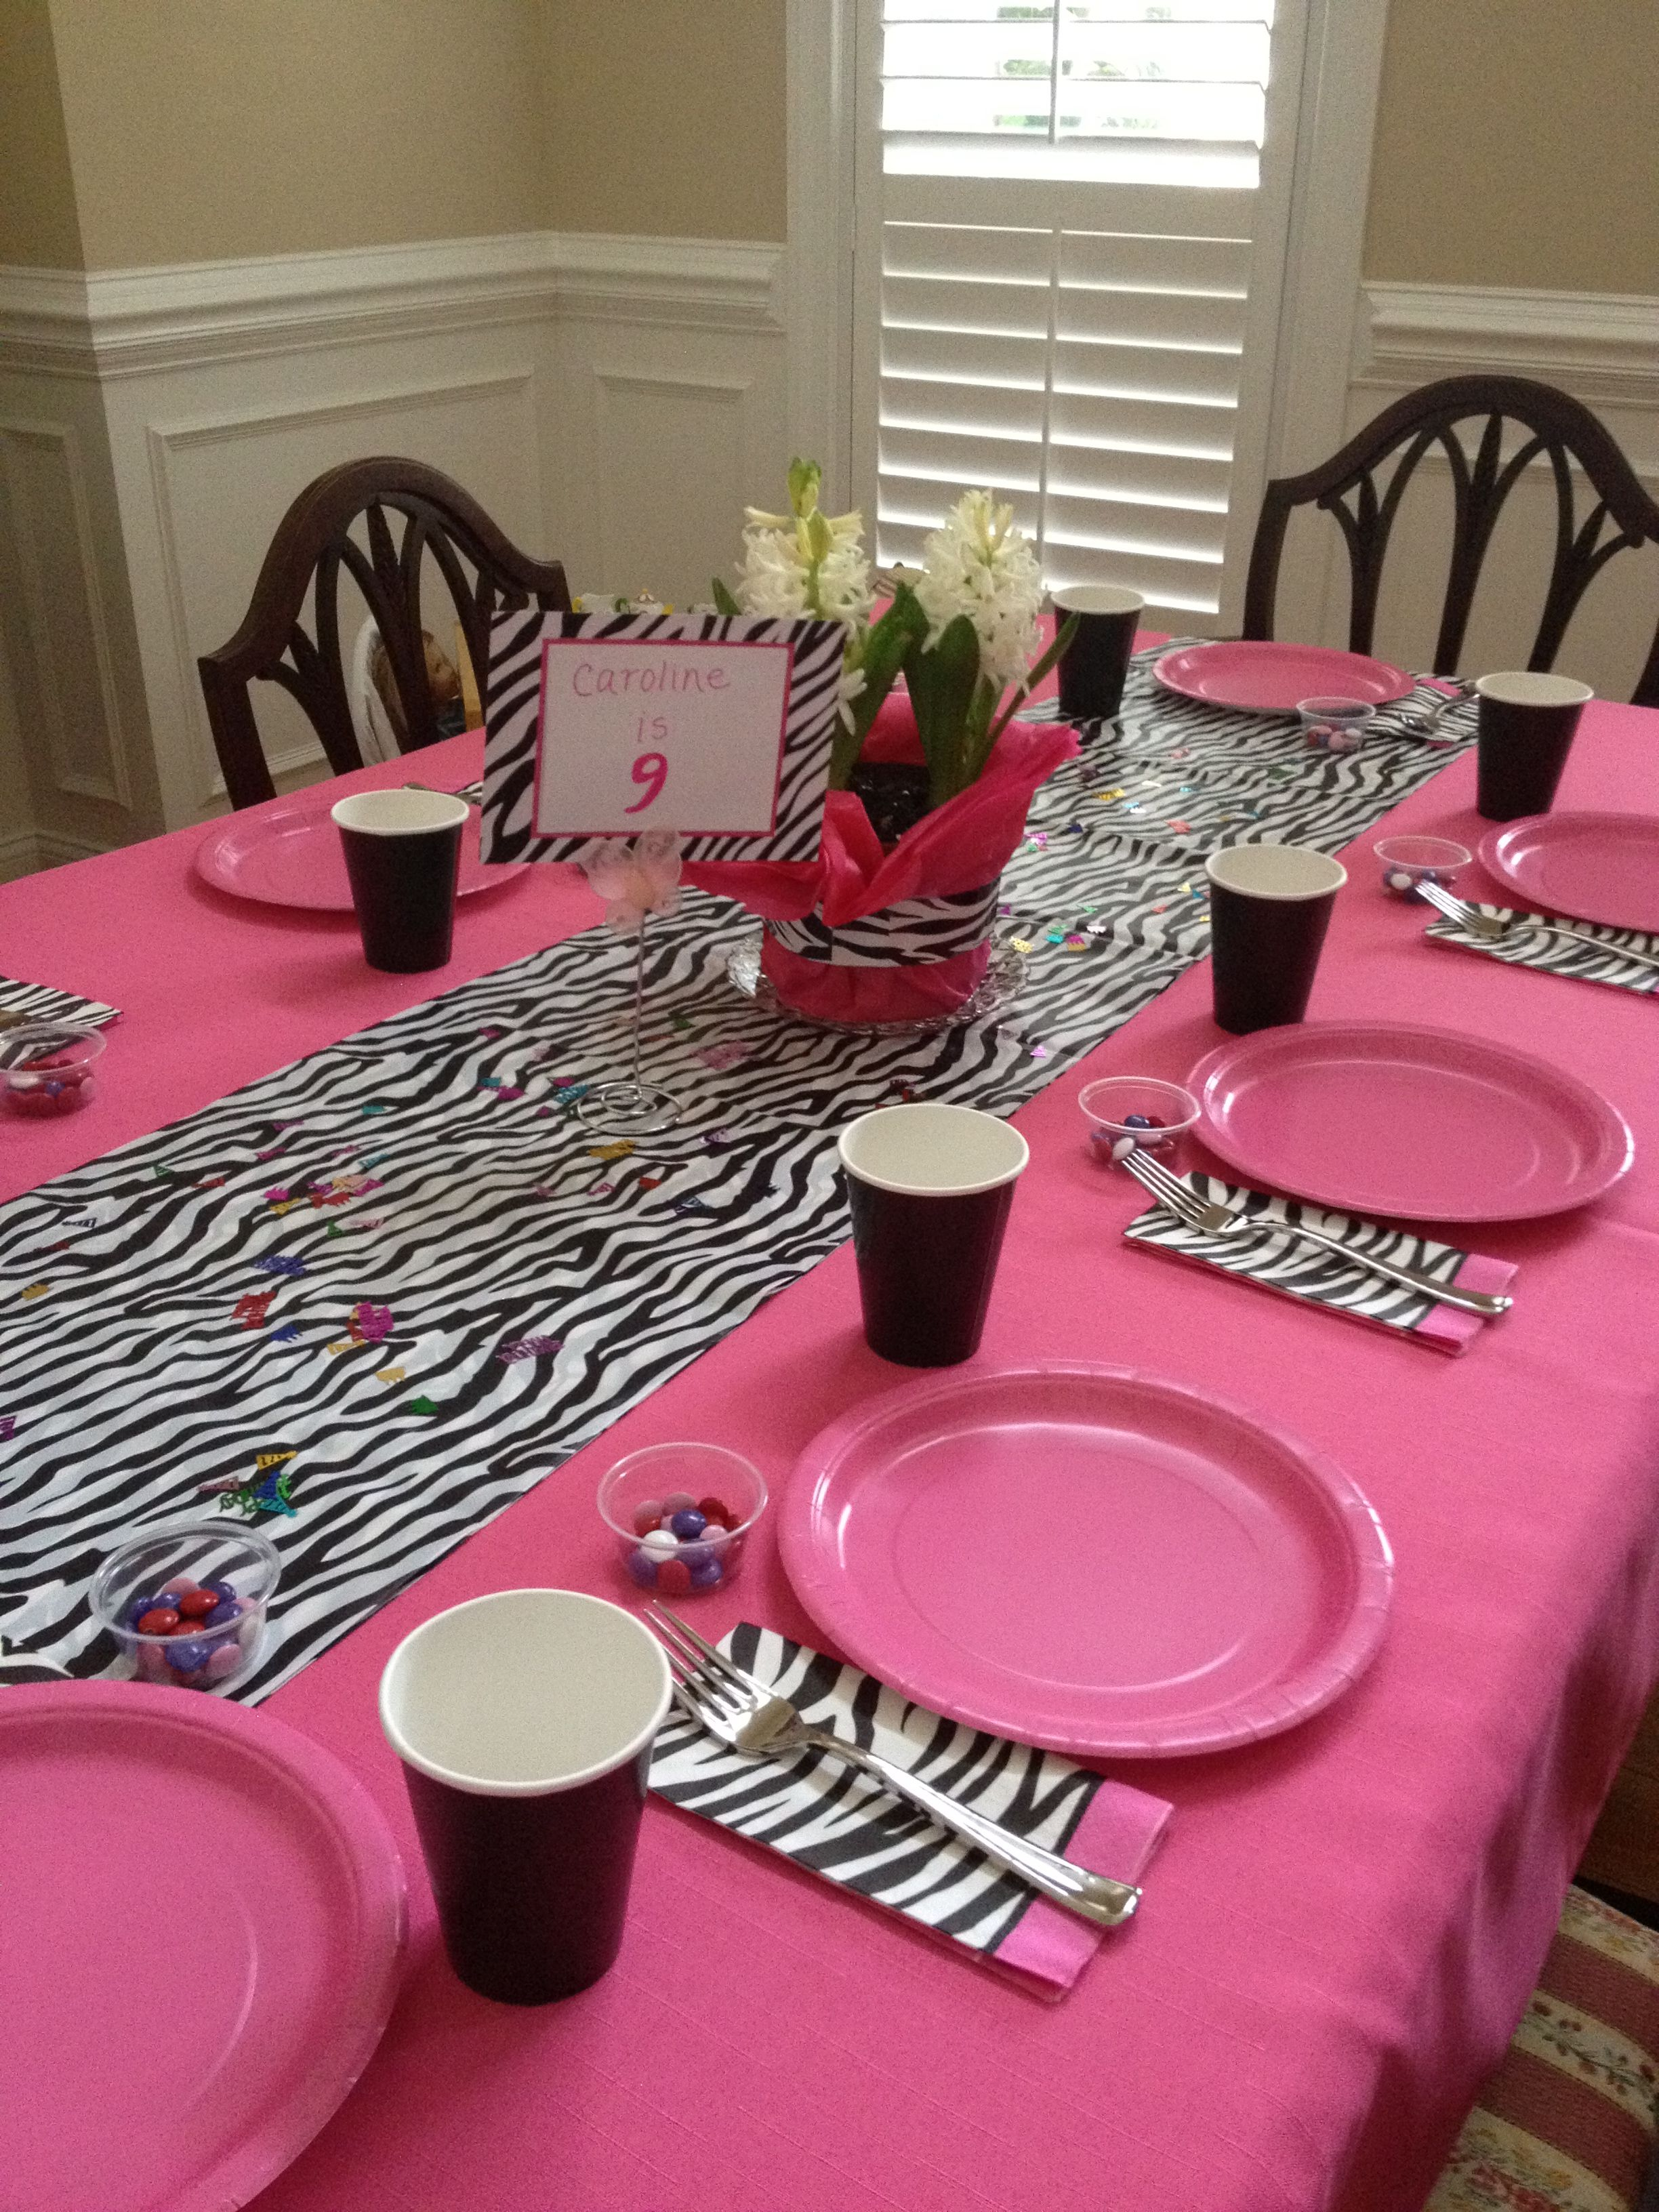 Instead Of Zebra, A Red With White Polka Dots Plastic Tablecloth Folded In  Half For Table Runner And A Black Tablecloth Under For A Minnie Theme